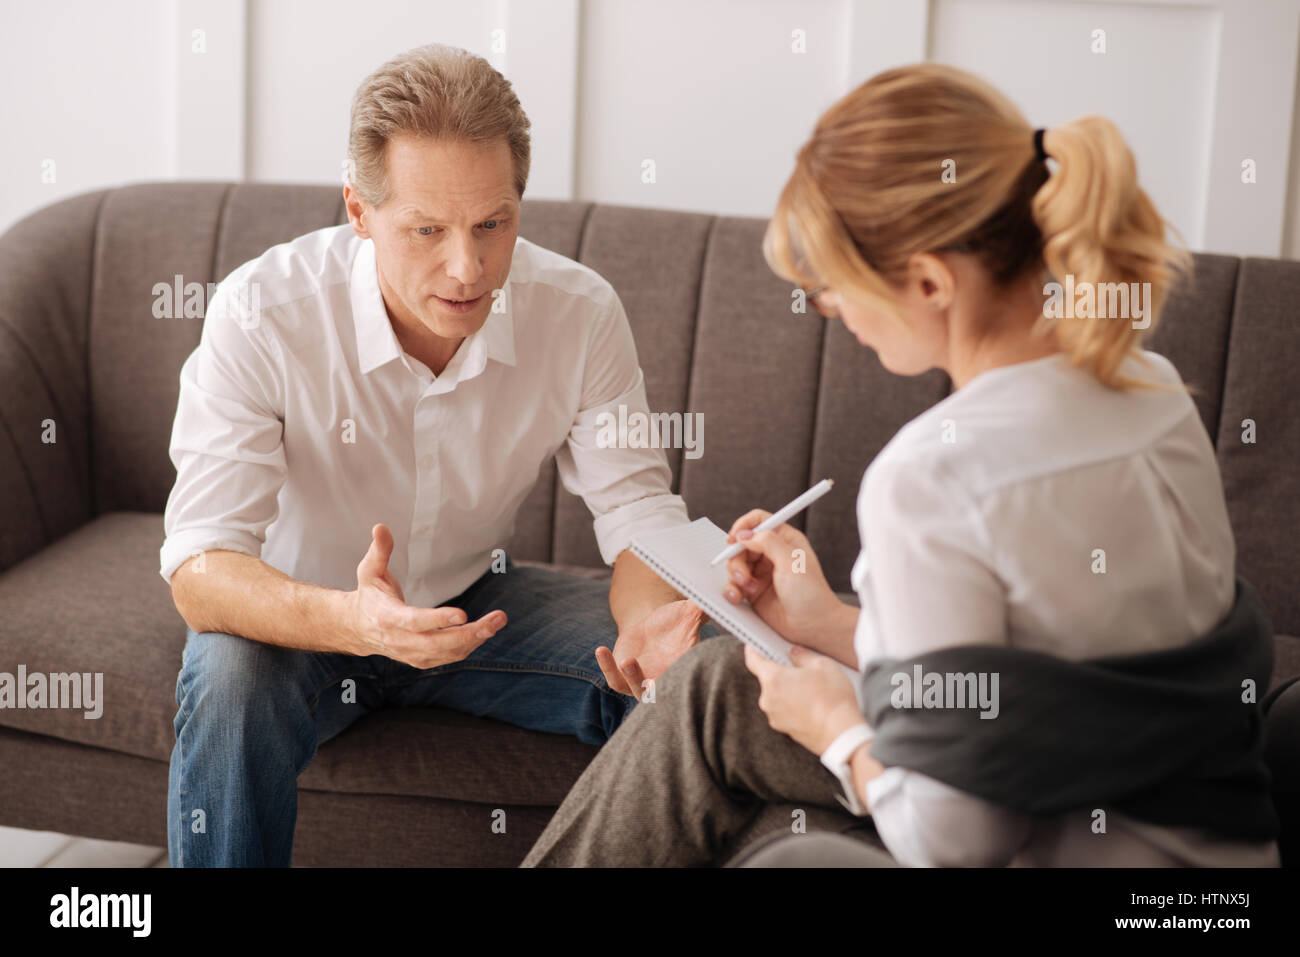 Professional help. Nice handsome pleasant man sitting comfortable on the sofa and sharing his concerns with a psychologist - Stock Image